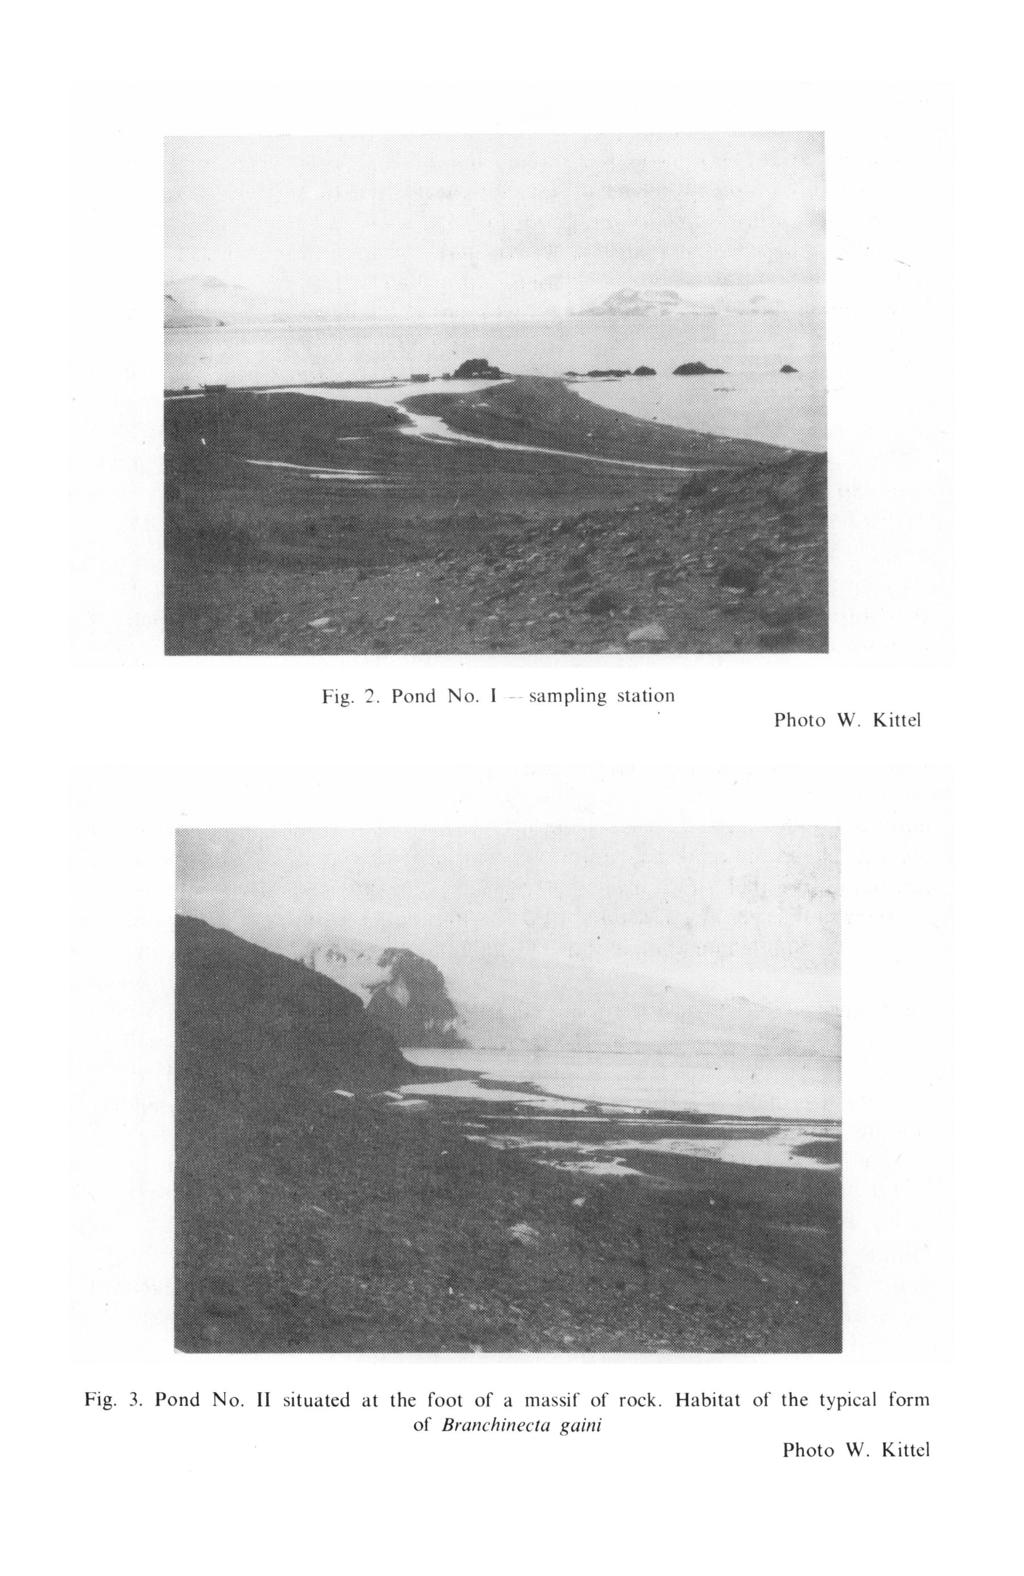 Fig. 2. Pond No. 1 sampling station Photo W. Kittel Fig. 3. Pond No. II situated at the foot of a massif of rock.